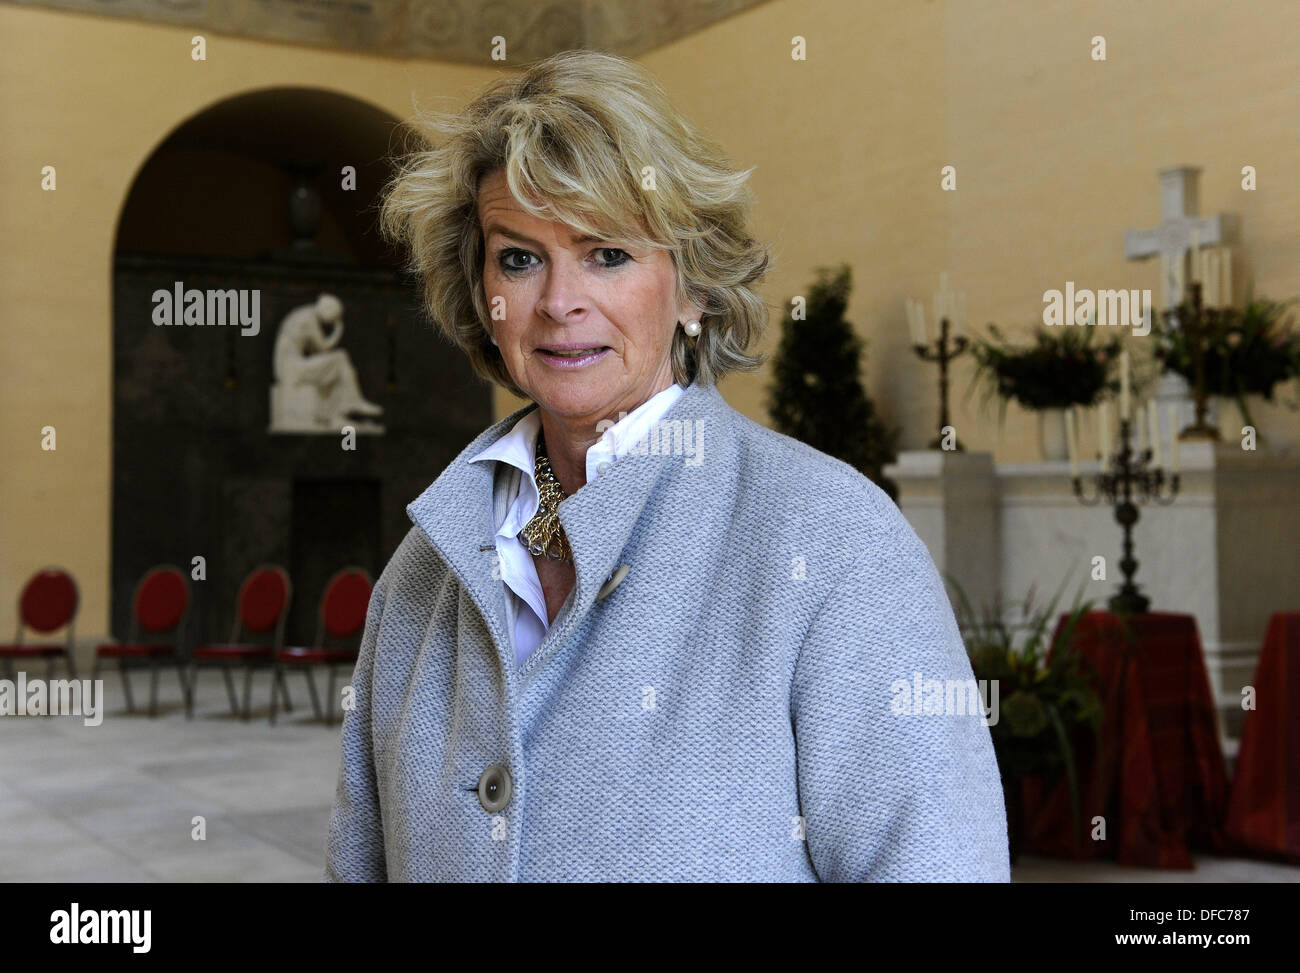 Duchess Of Oldenburg High Resolution Stock Photography and Images ...